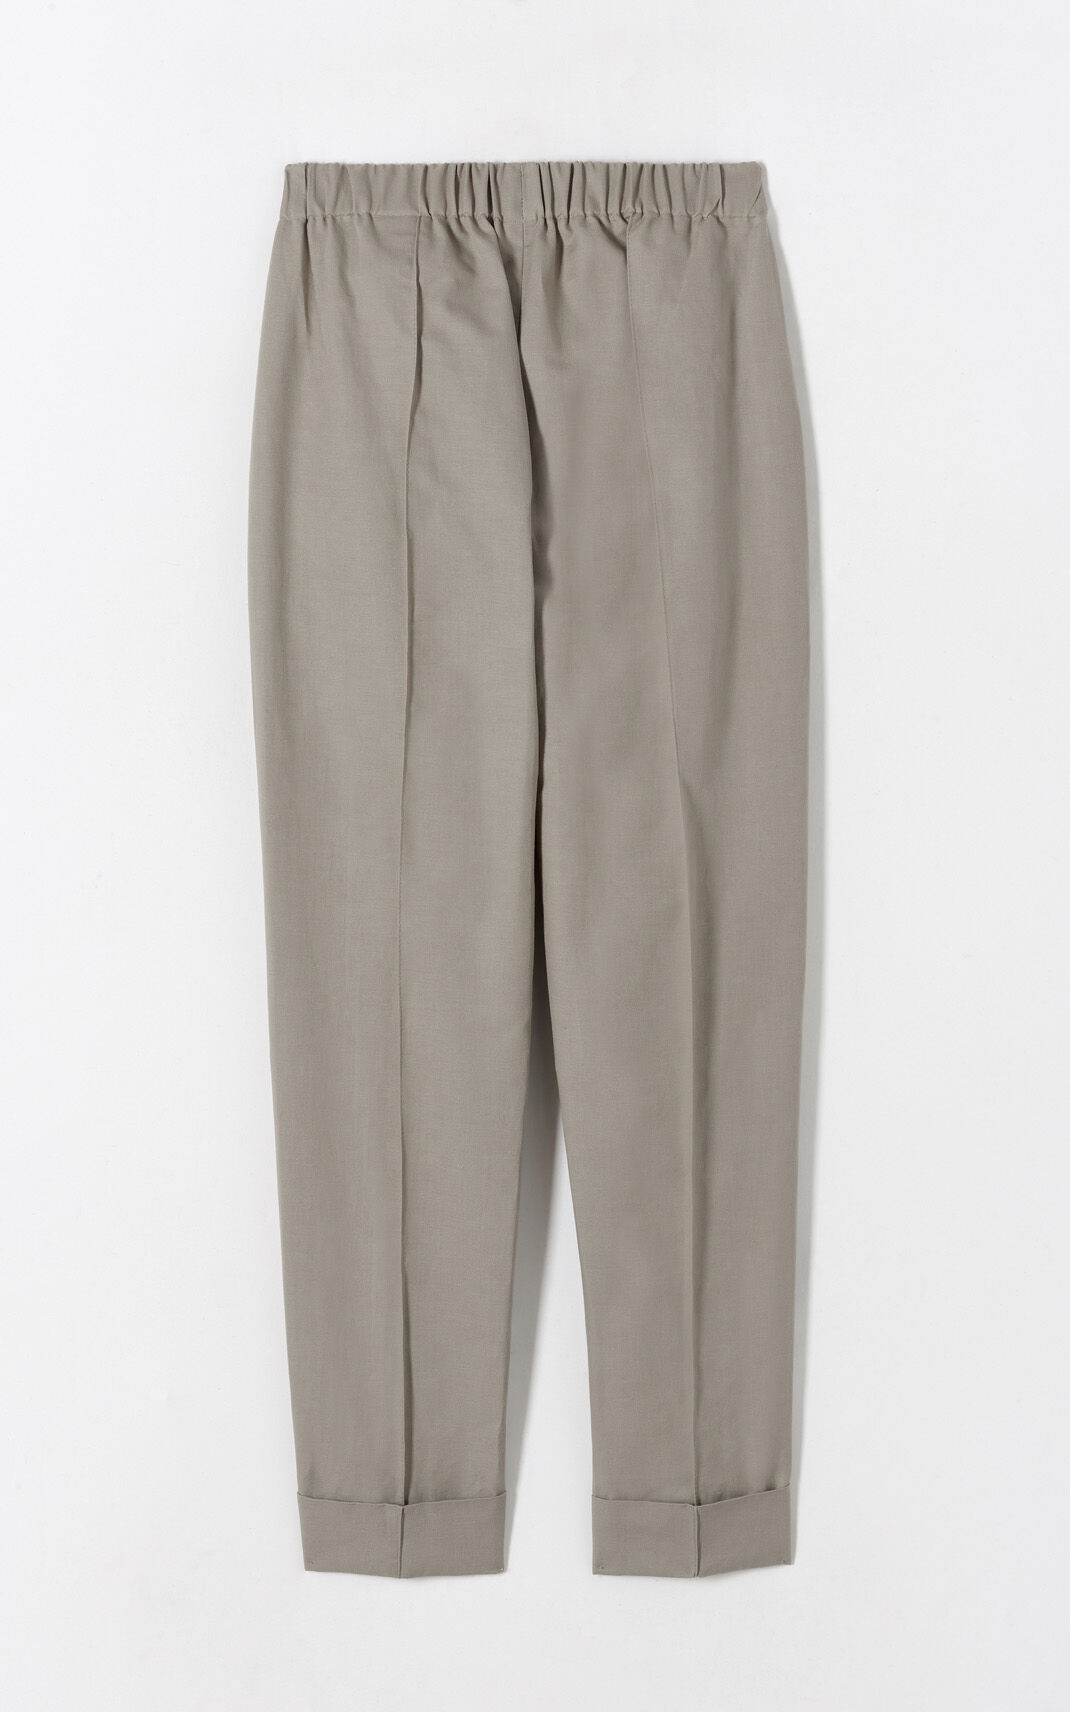 PALE CAMEL Crepe turn-up trousers for women KENZO